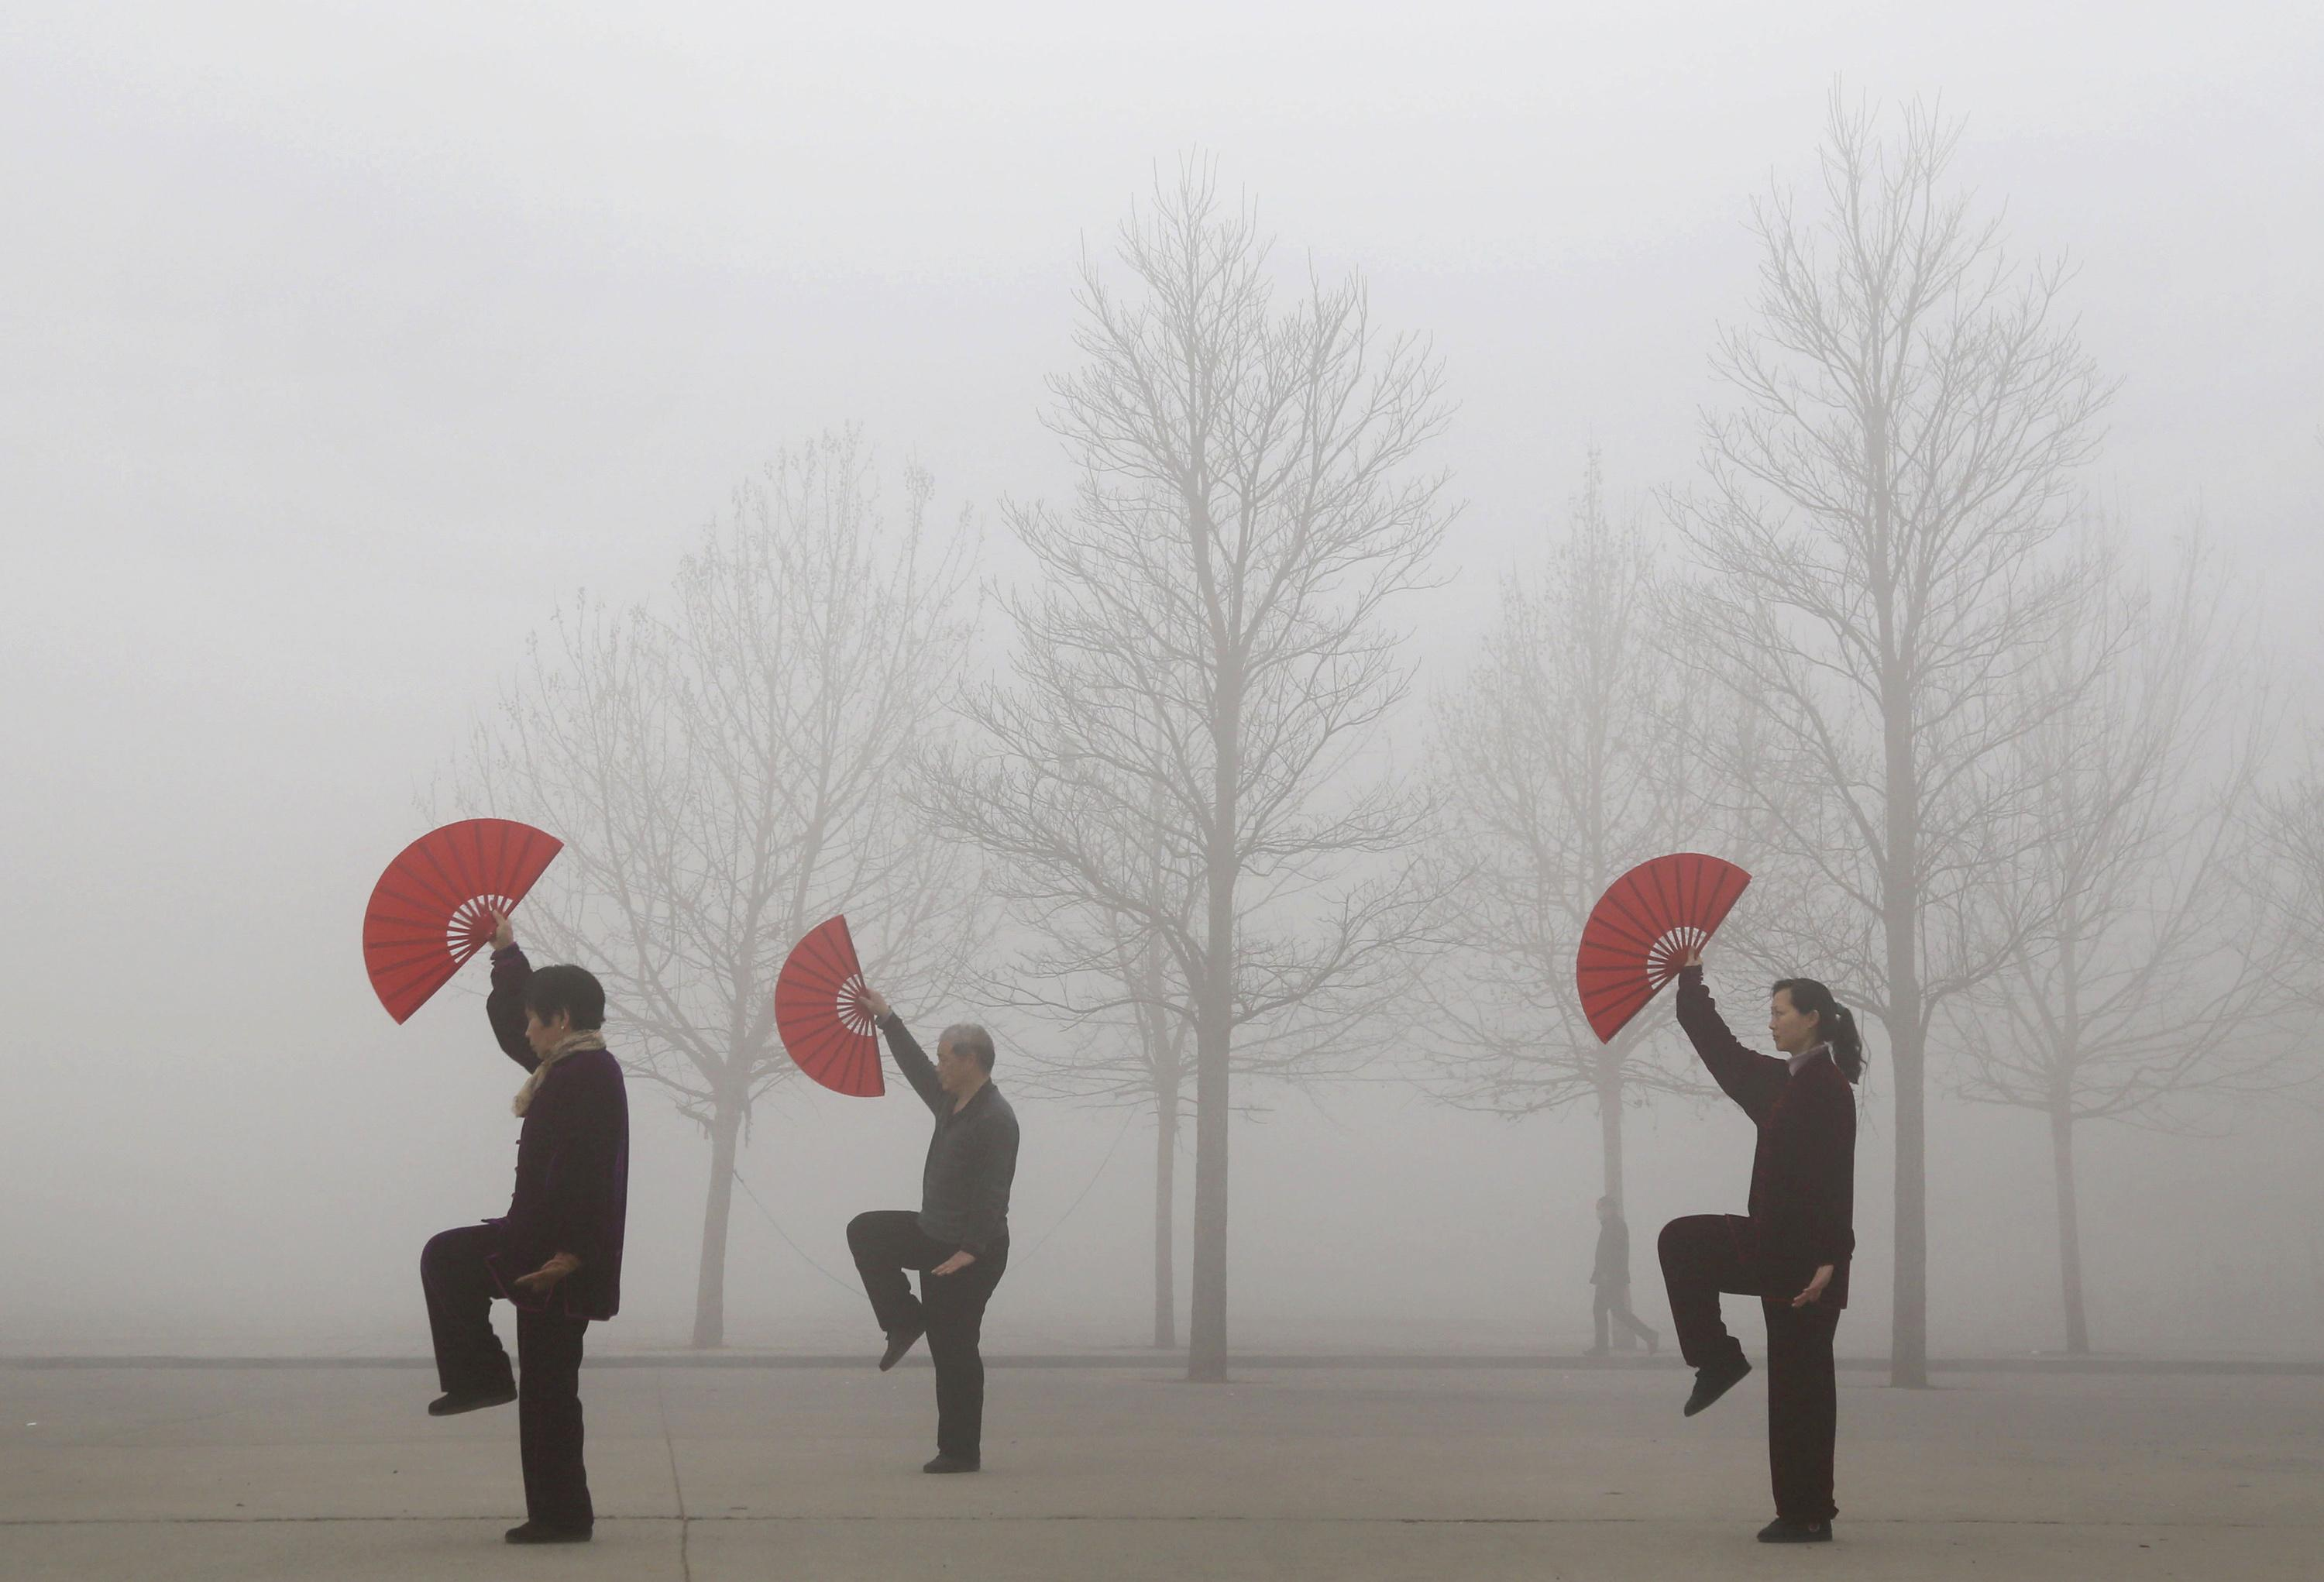 China Air Pollution Kills 4 000 People A Day Study